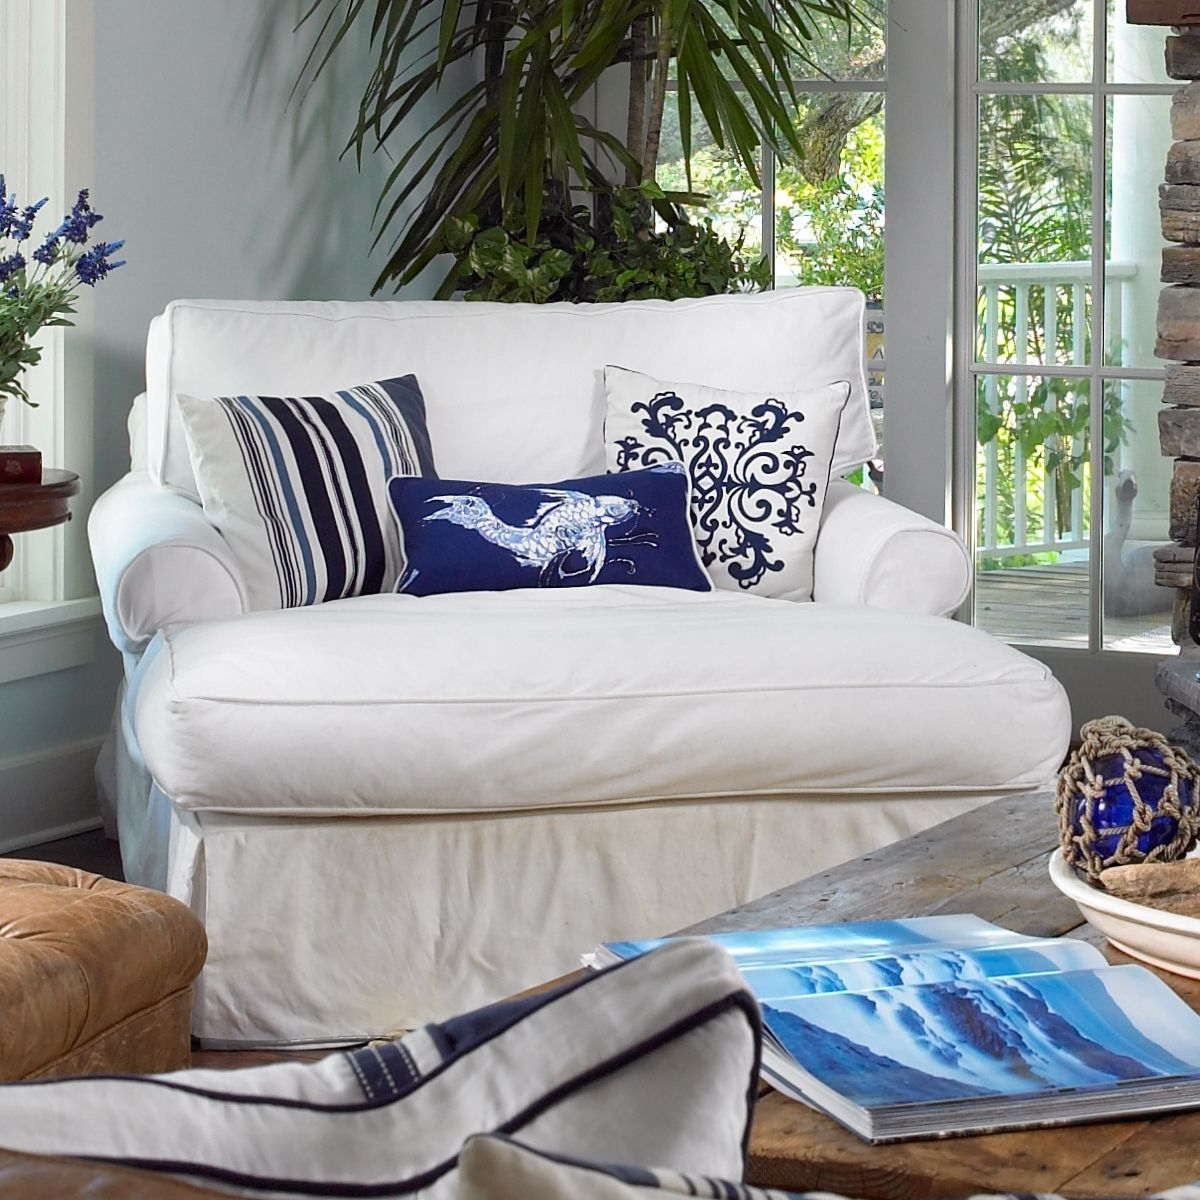 Chaise Lounge Chairs With Arms Slipcover Regarding Popular Found It!!! I Am In Love With This Oversized Chaise Lounge Chair (View 5 of 15)